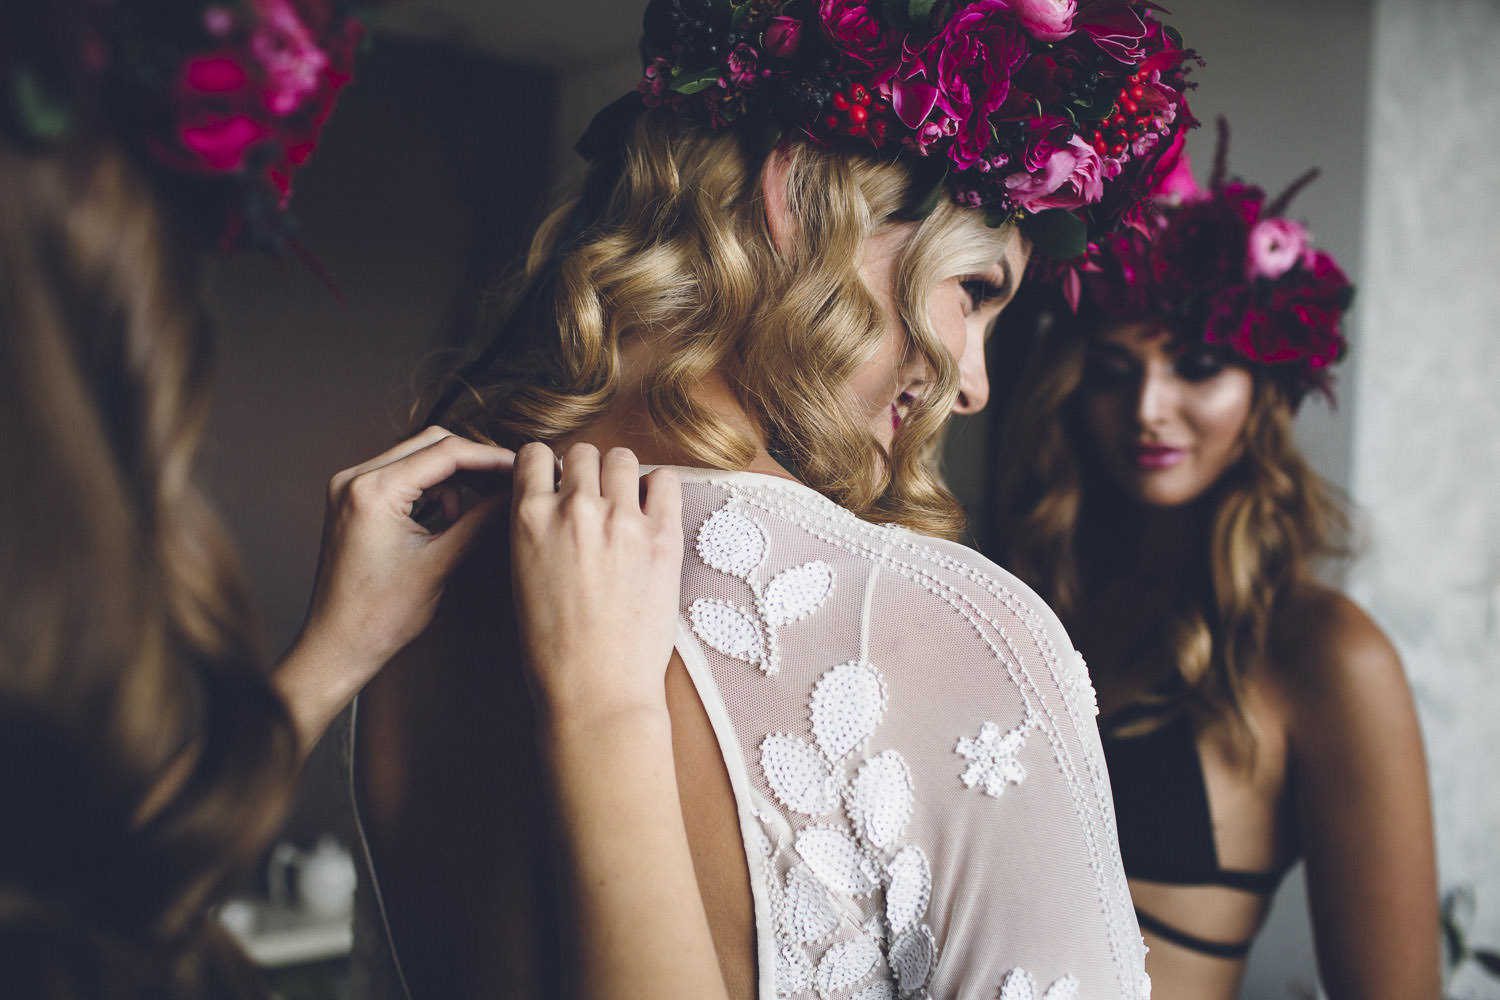 weareallstardust_perth_bridesmaids_style_decadent_preparation-32